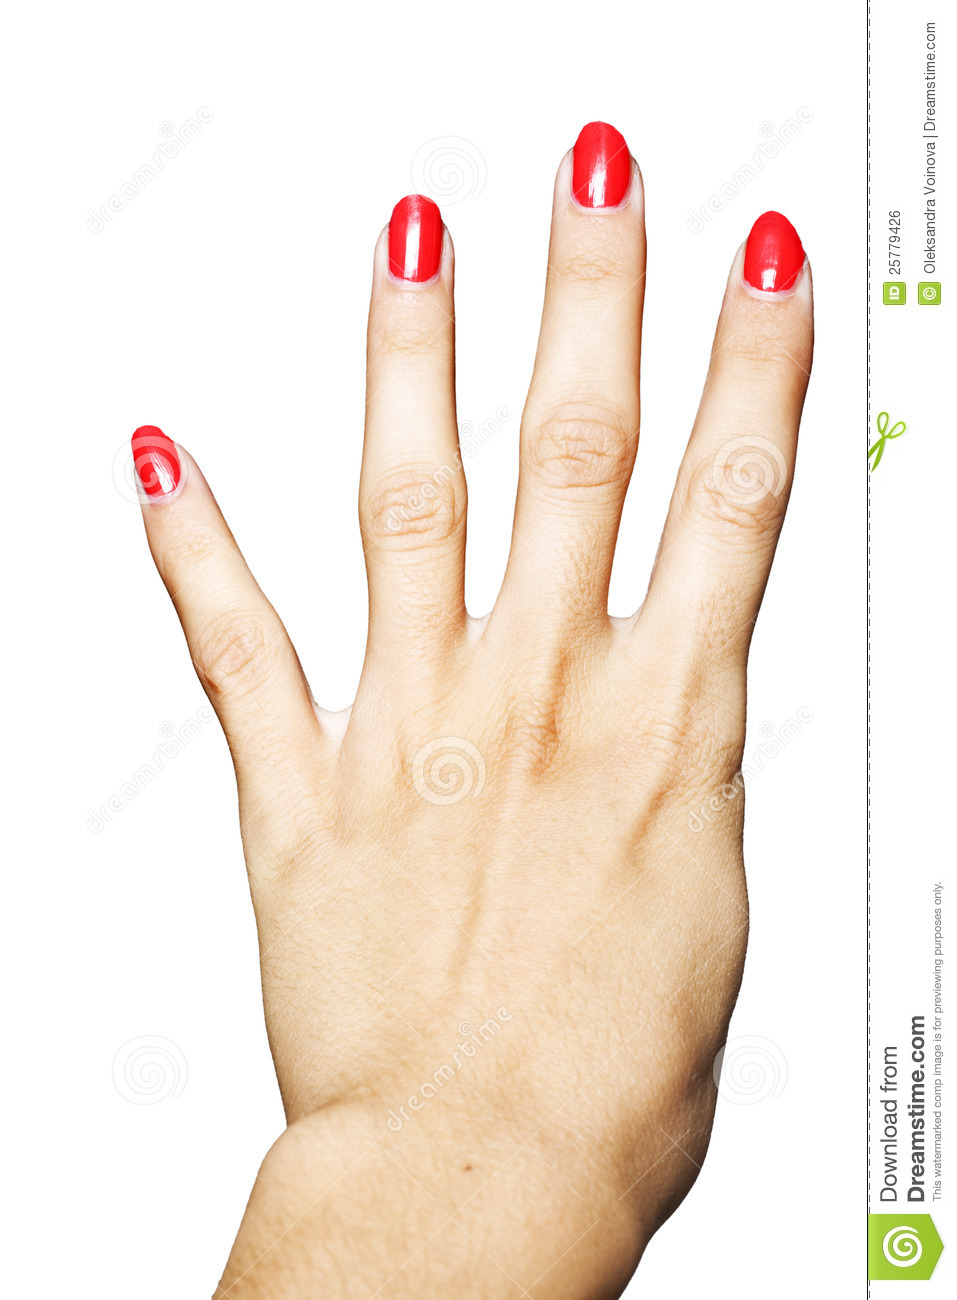 WHAT HAS 4 FINGERS AND A THUMB BUT IS NO